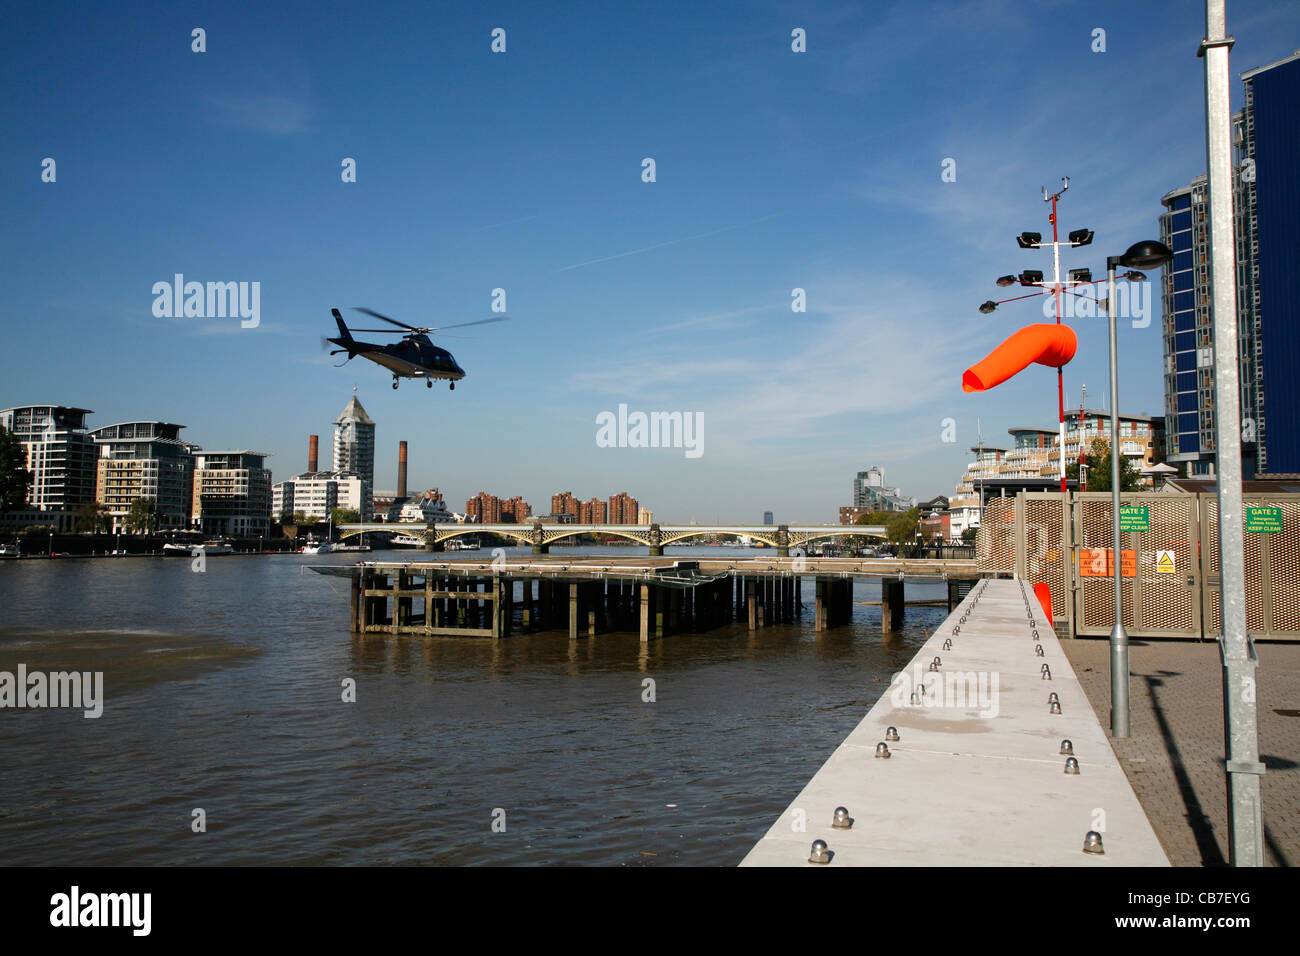 Helicopter landing at Battersea Heliport, Battersea, London, UK - Stock Image